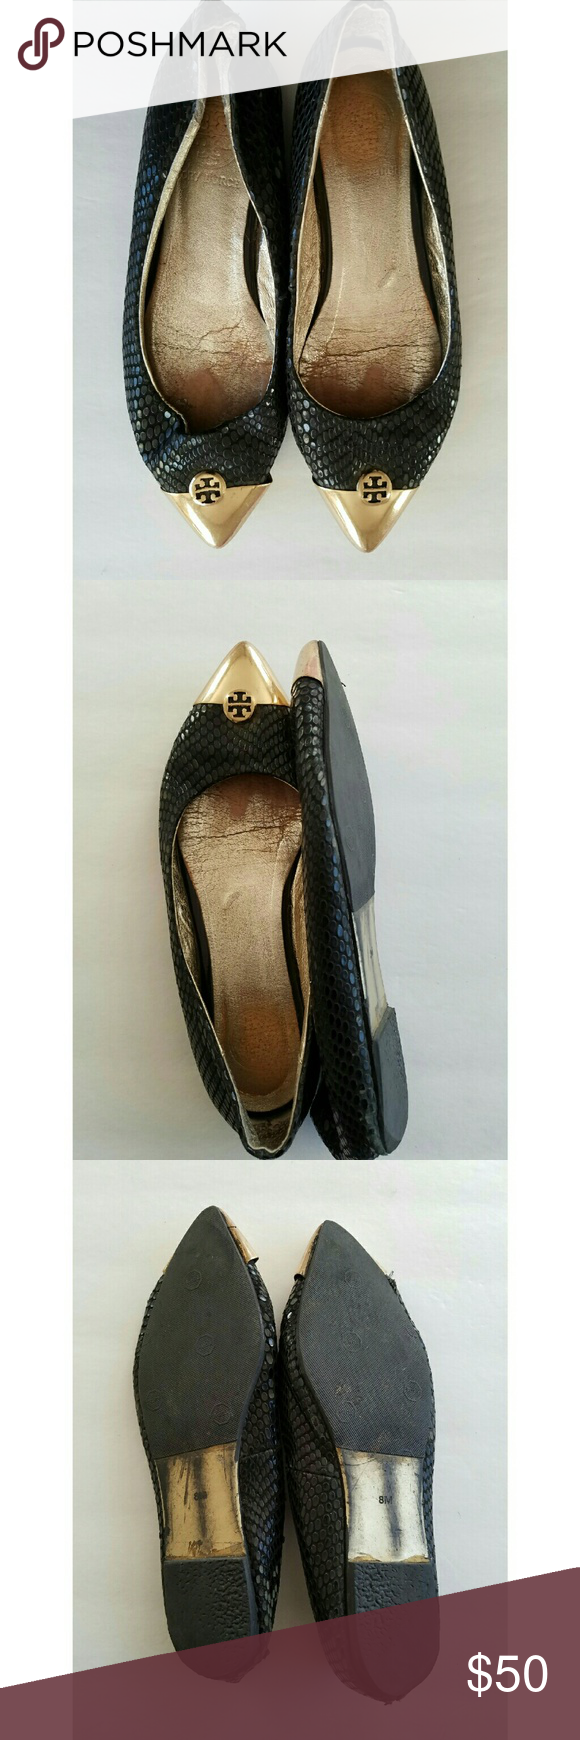 1db305d640f238 Tory Burch Gold Pointed Toe Flats Size 8M Pre-owned has scratches on shoe